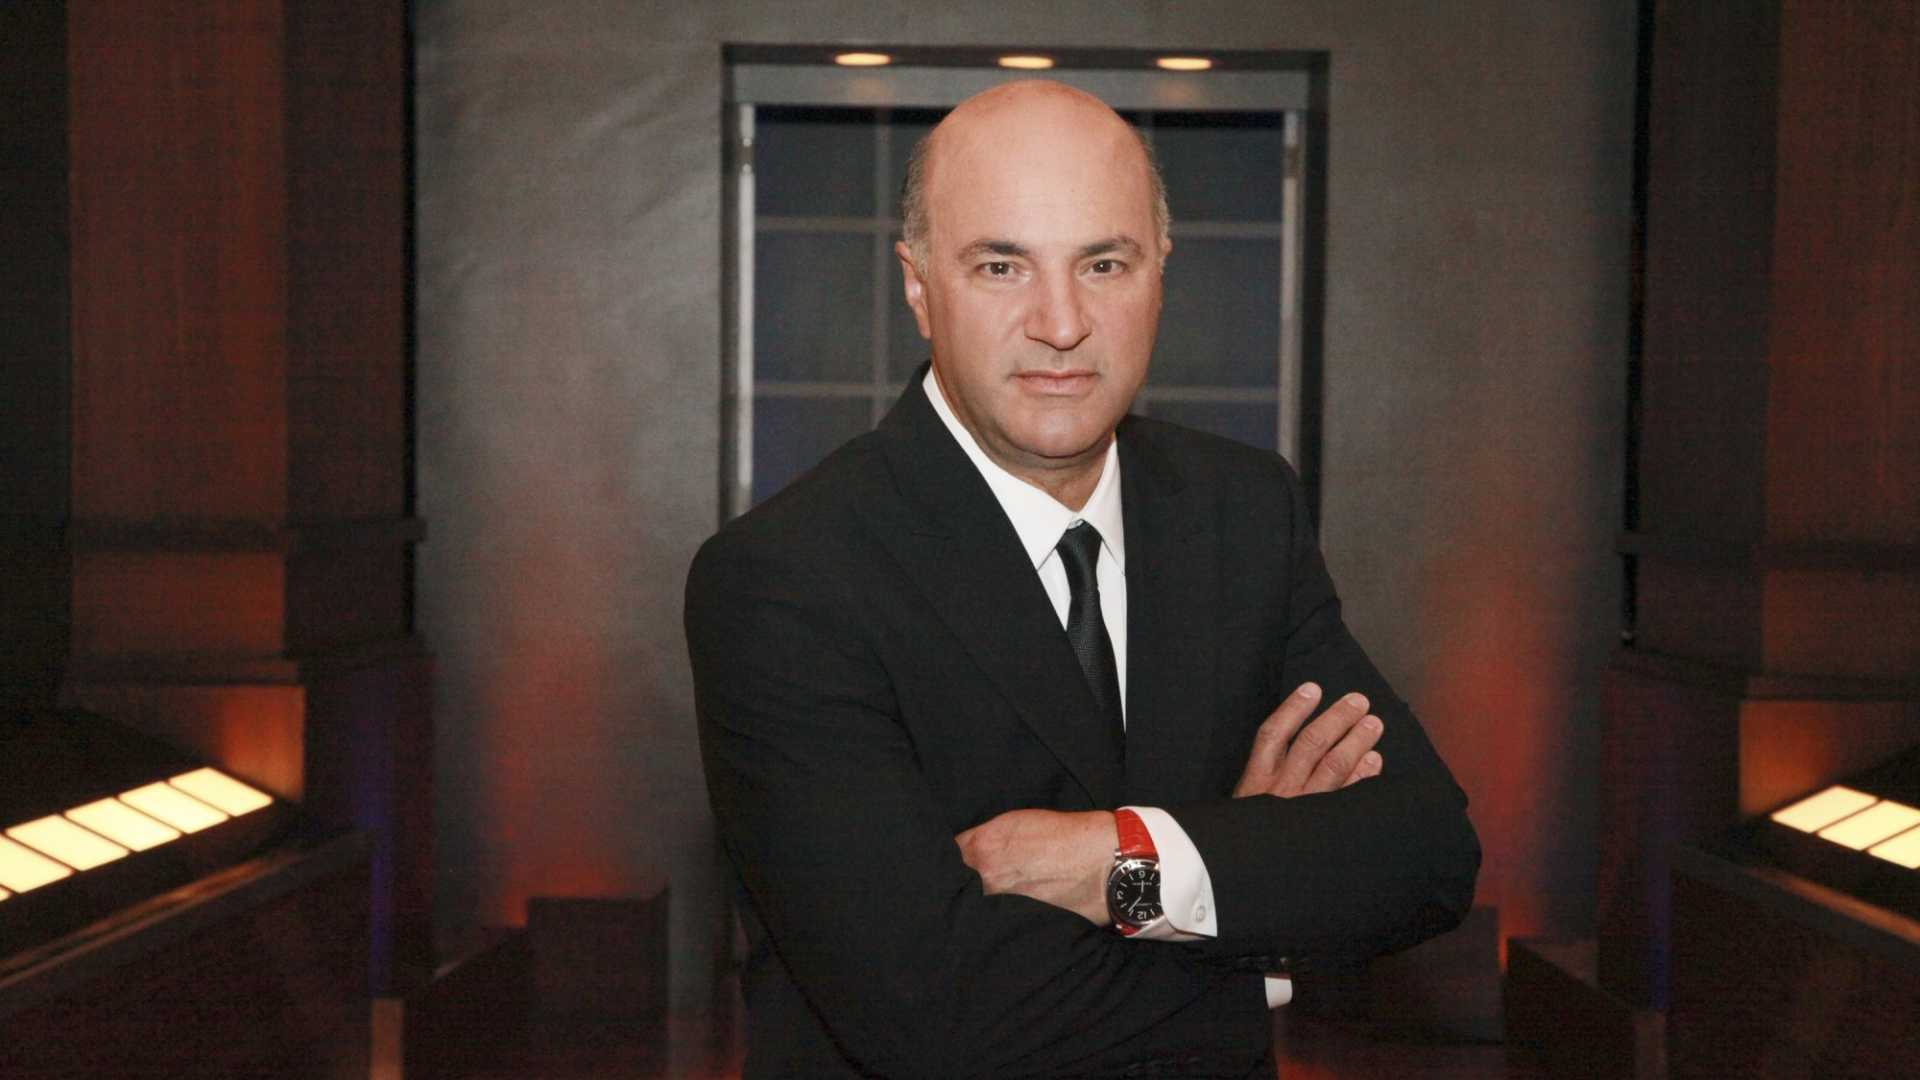 Kevin O'Leary's Top 5 Tips on How to Become a Stellar Salesperson